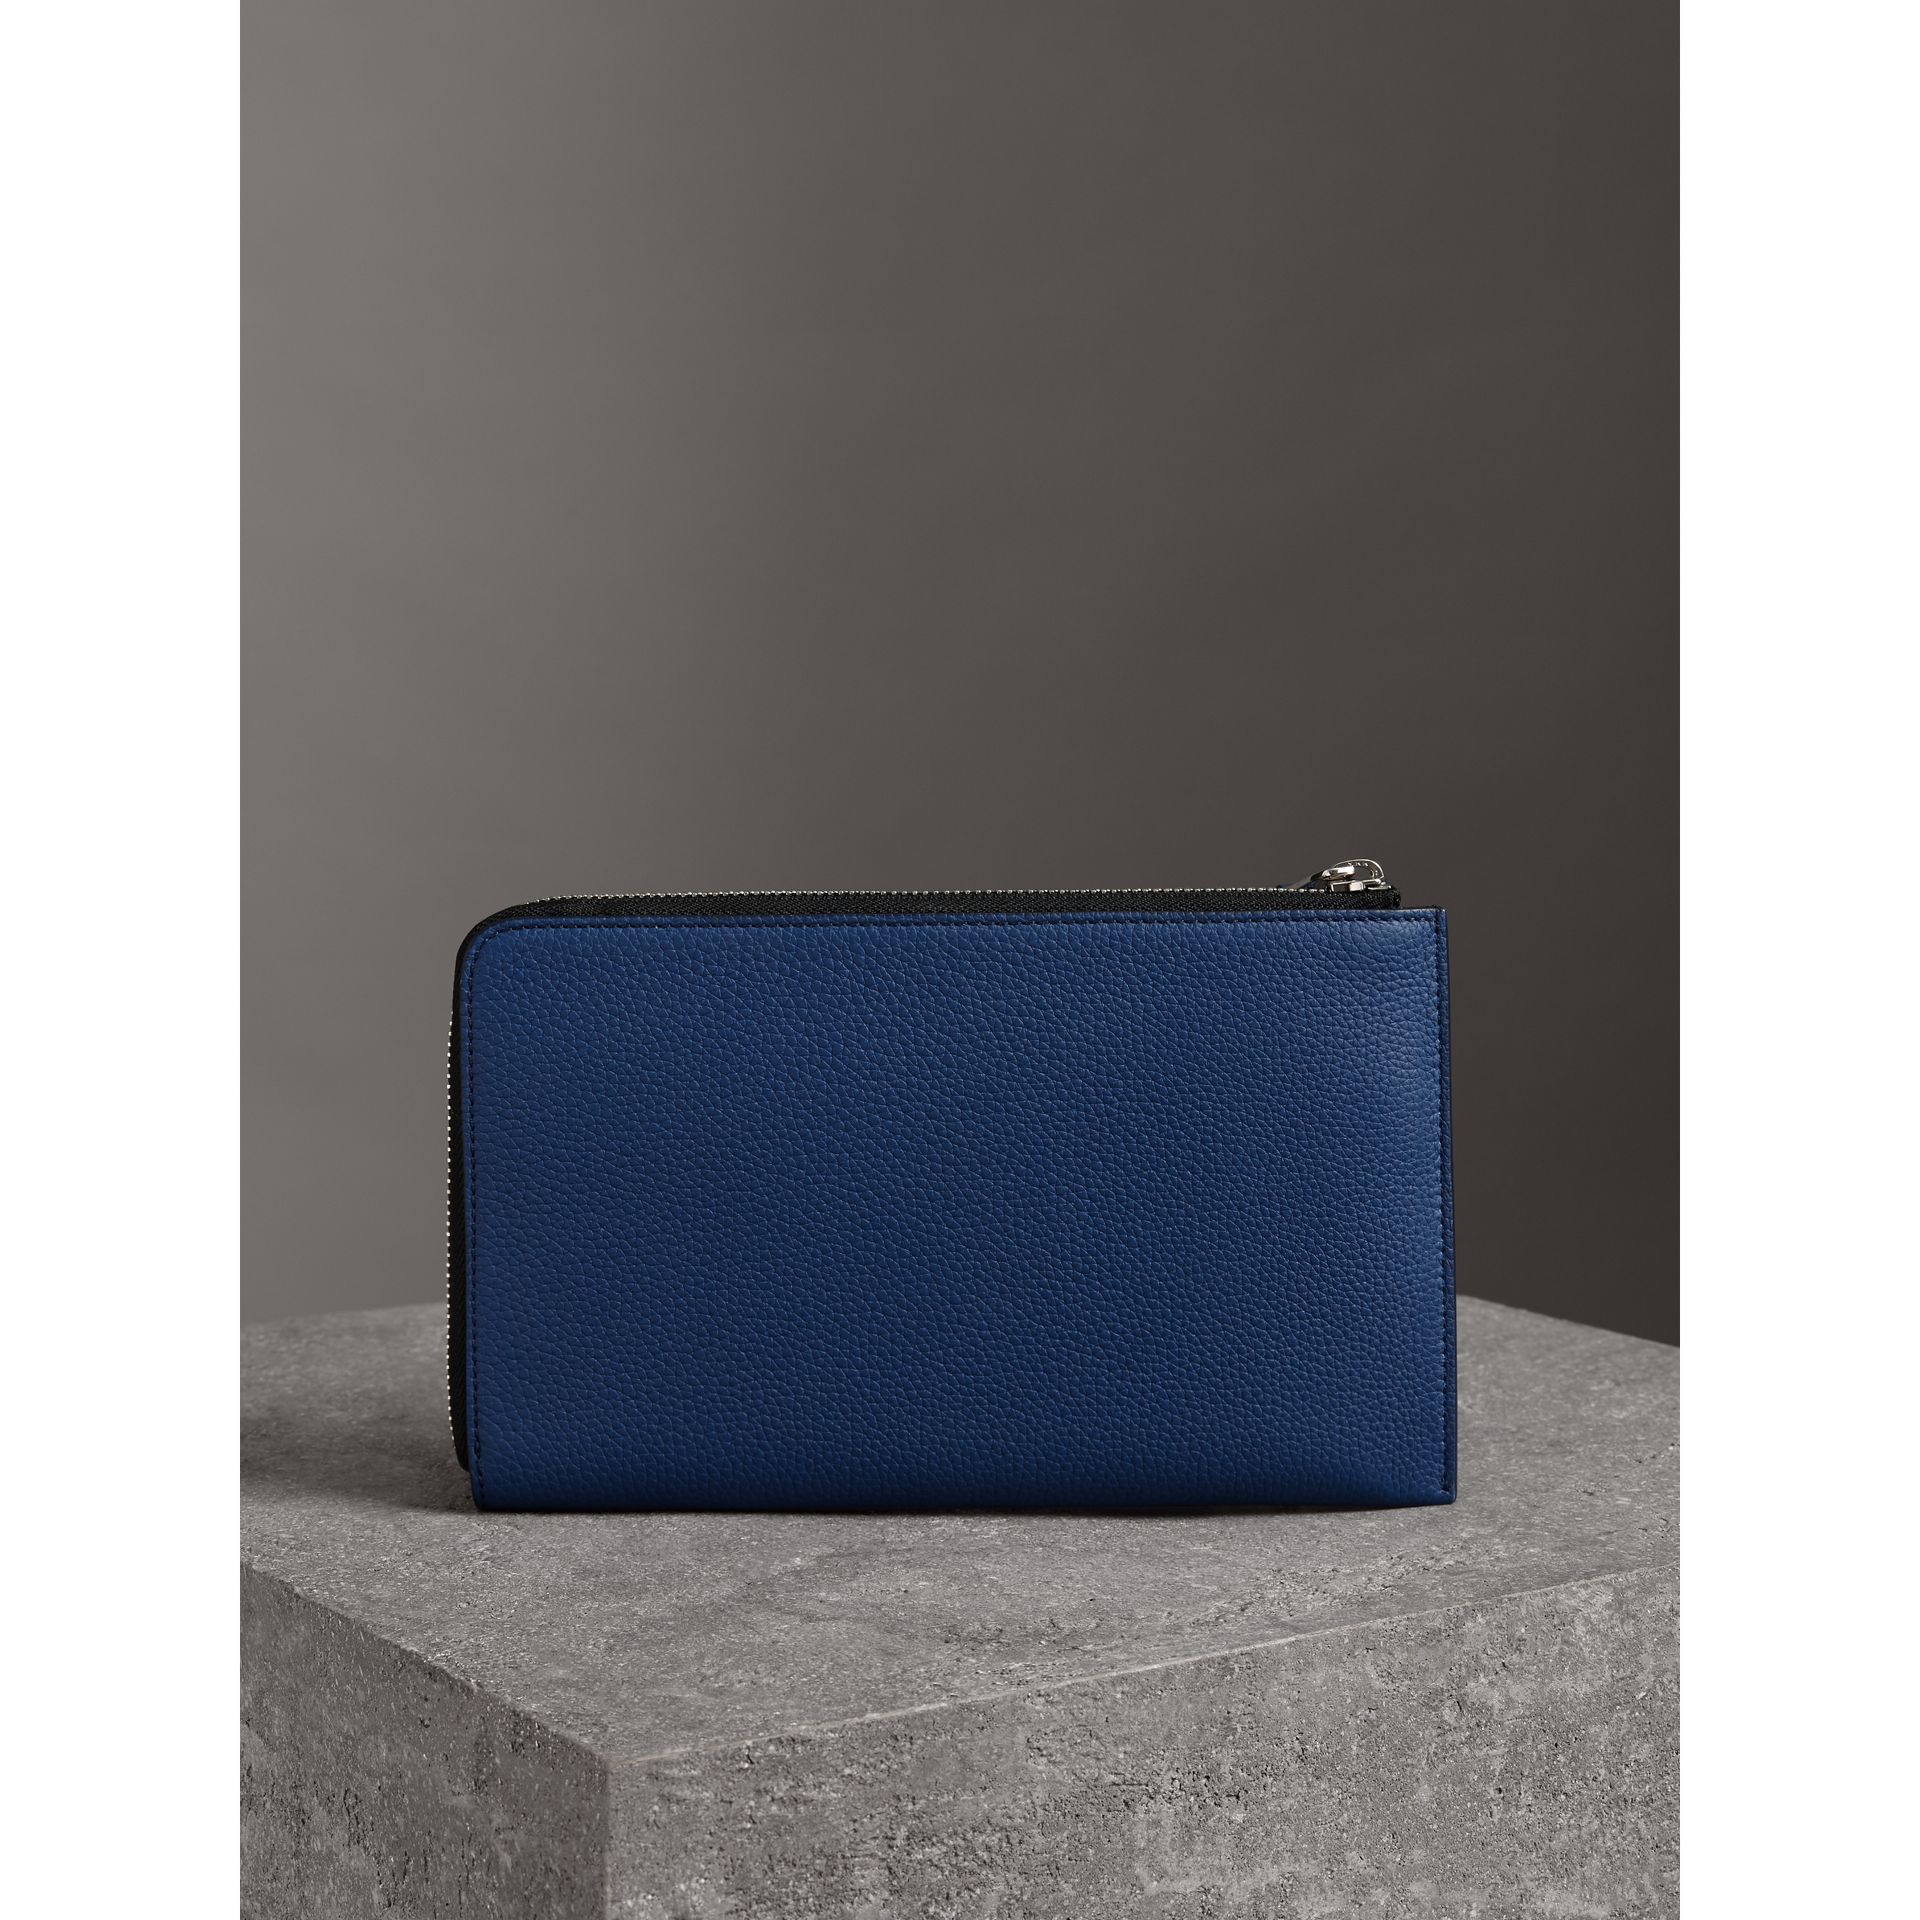 Two-tone Grainy Leather Travel Wallet in Bright Ultramarine - Men | Burberry Hong Kong - gallery image 2